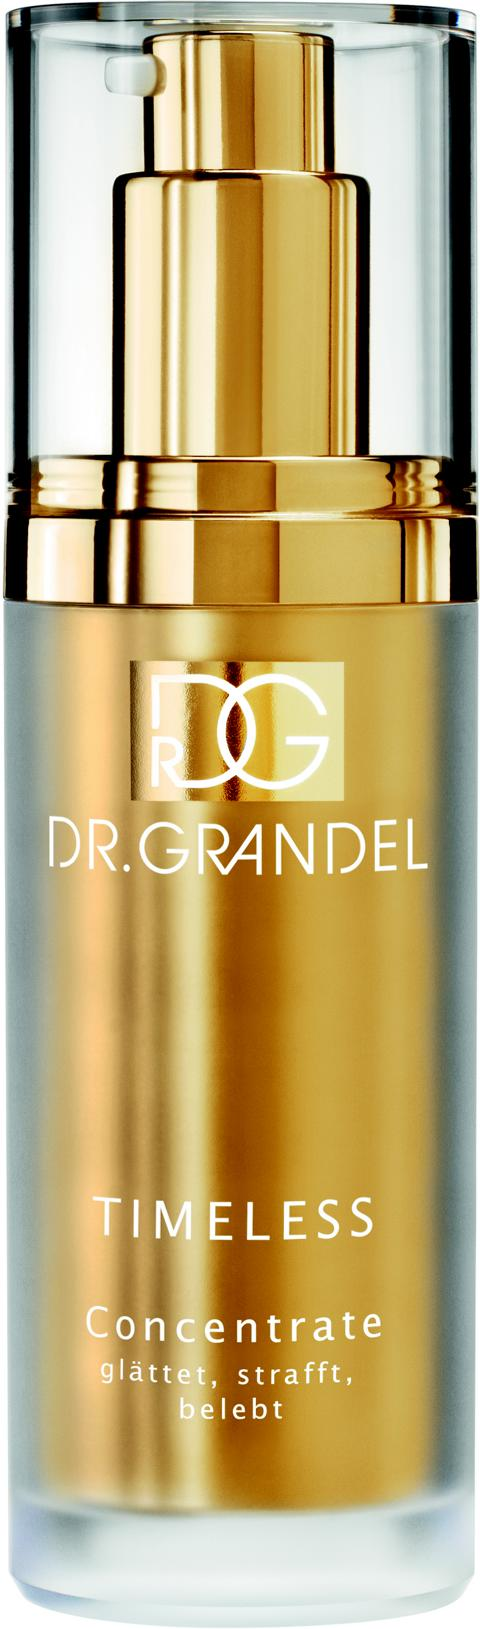 GRANDEL Timeless Concentrate